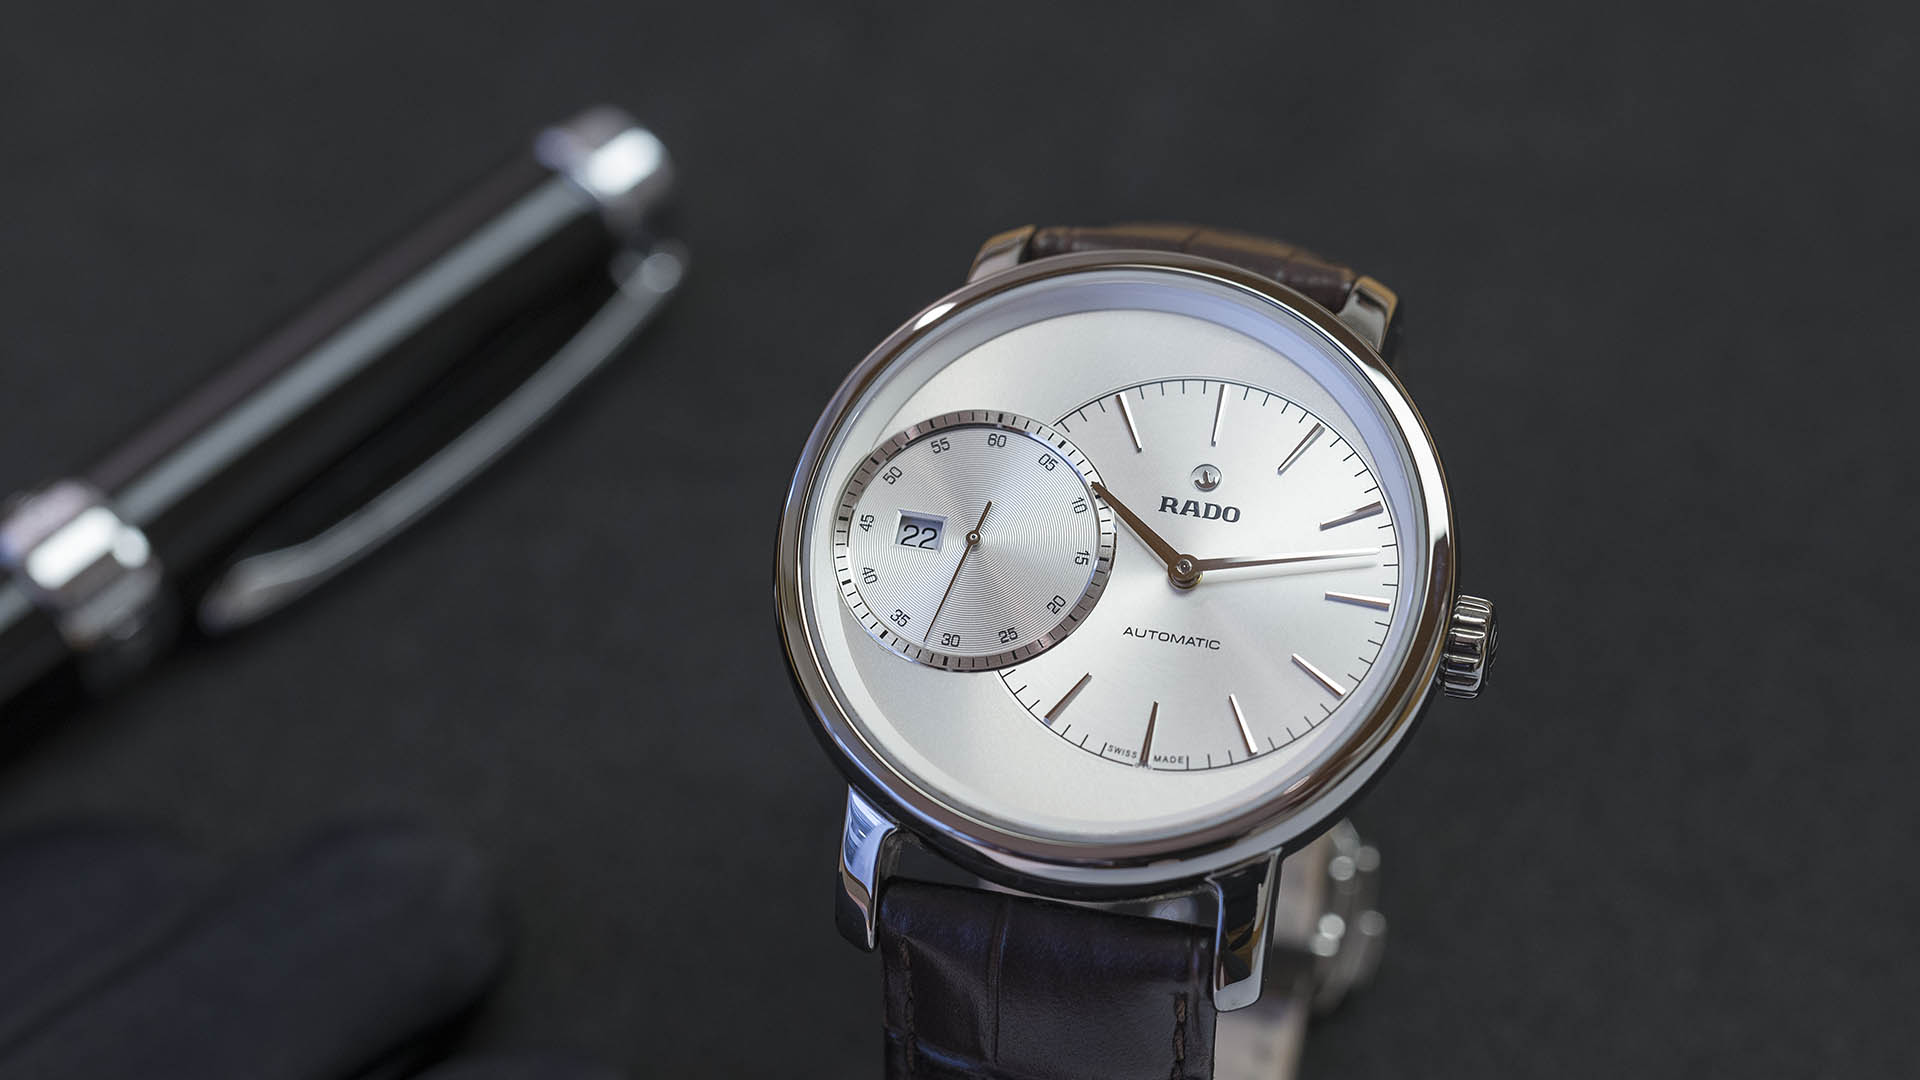 RADO_DiaMaster_Automatic_Grande_Seconde_01-657-0129-3-410-3-.jpg